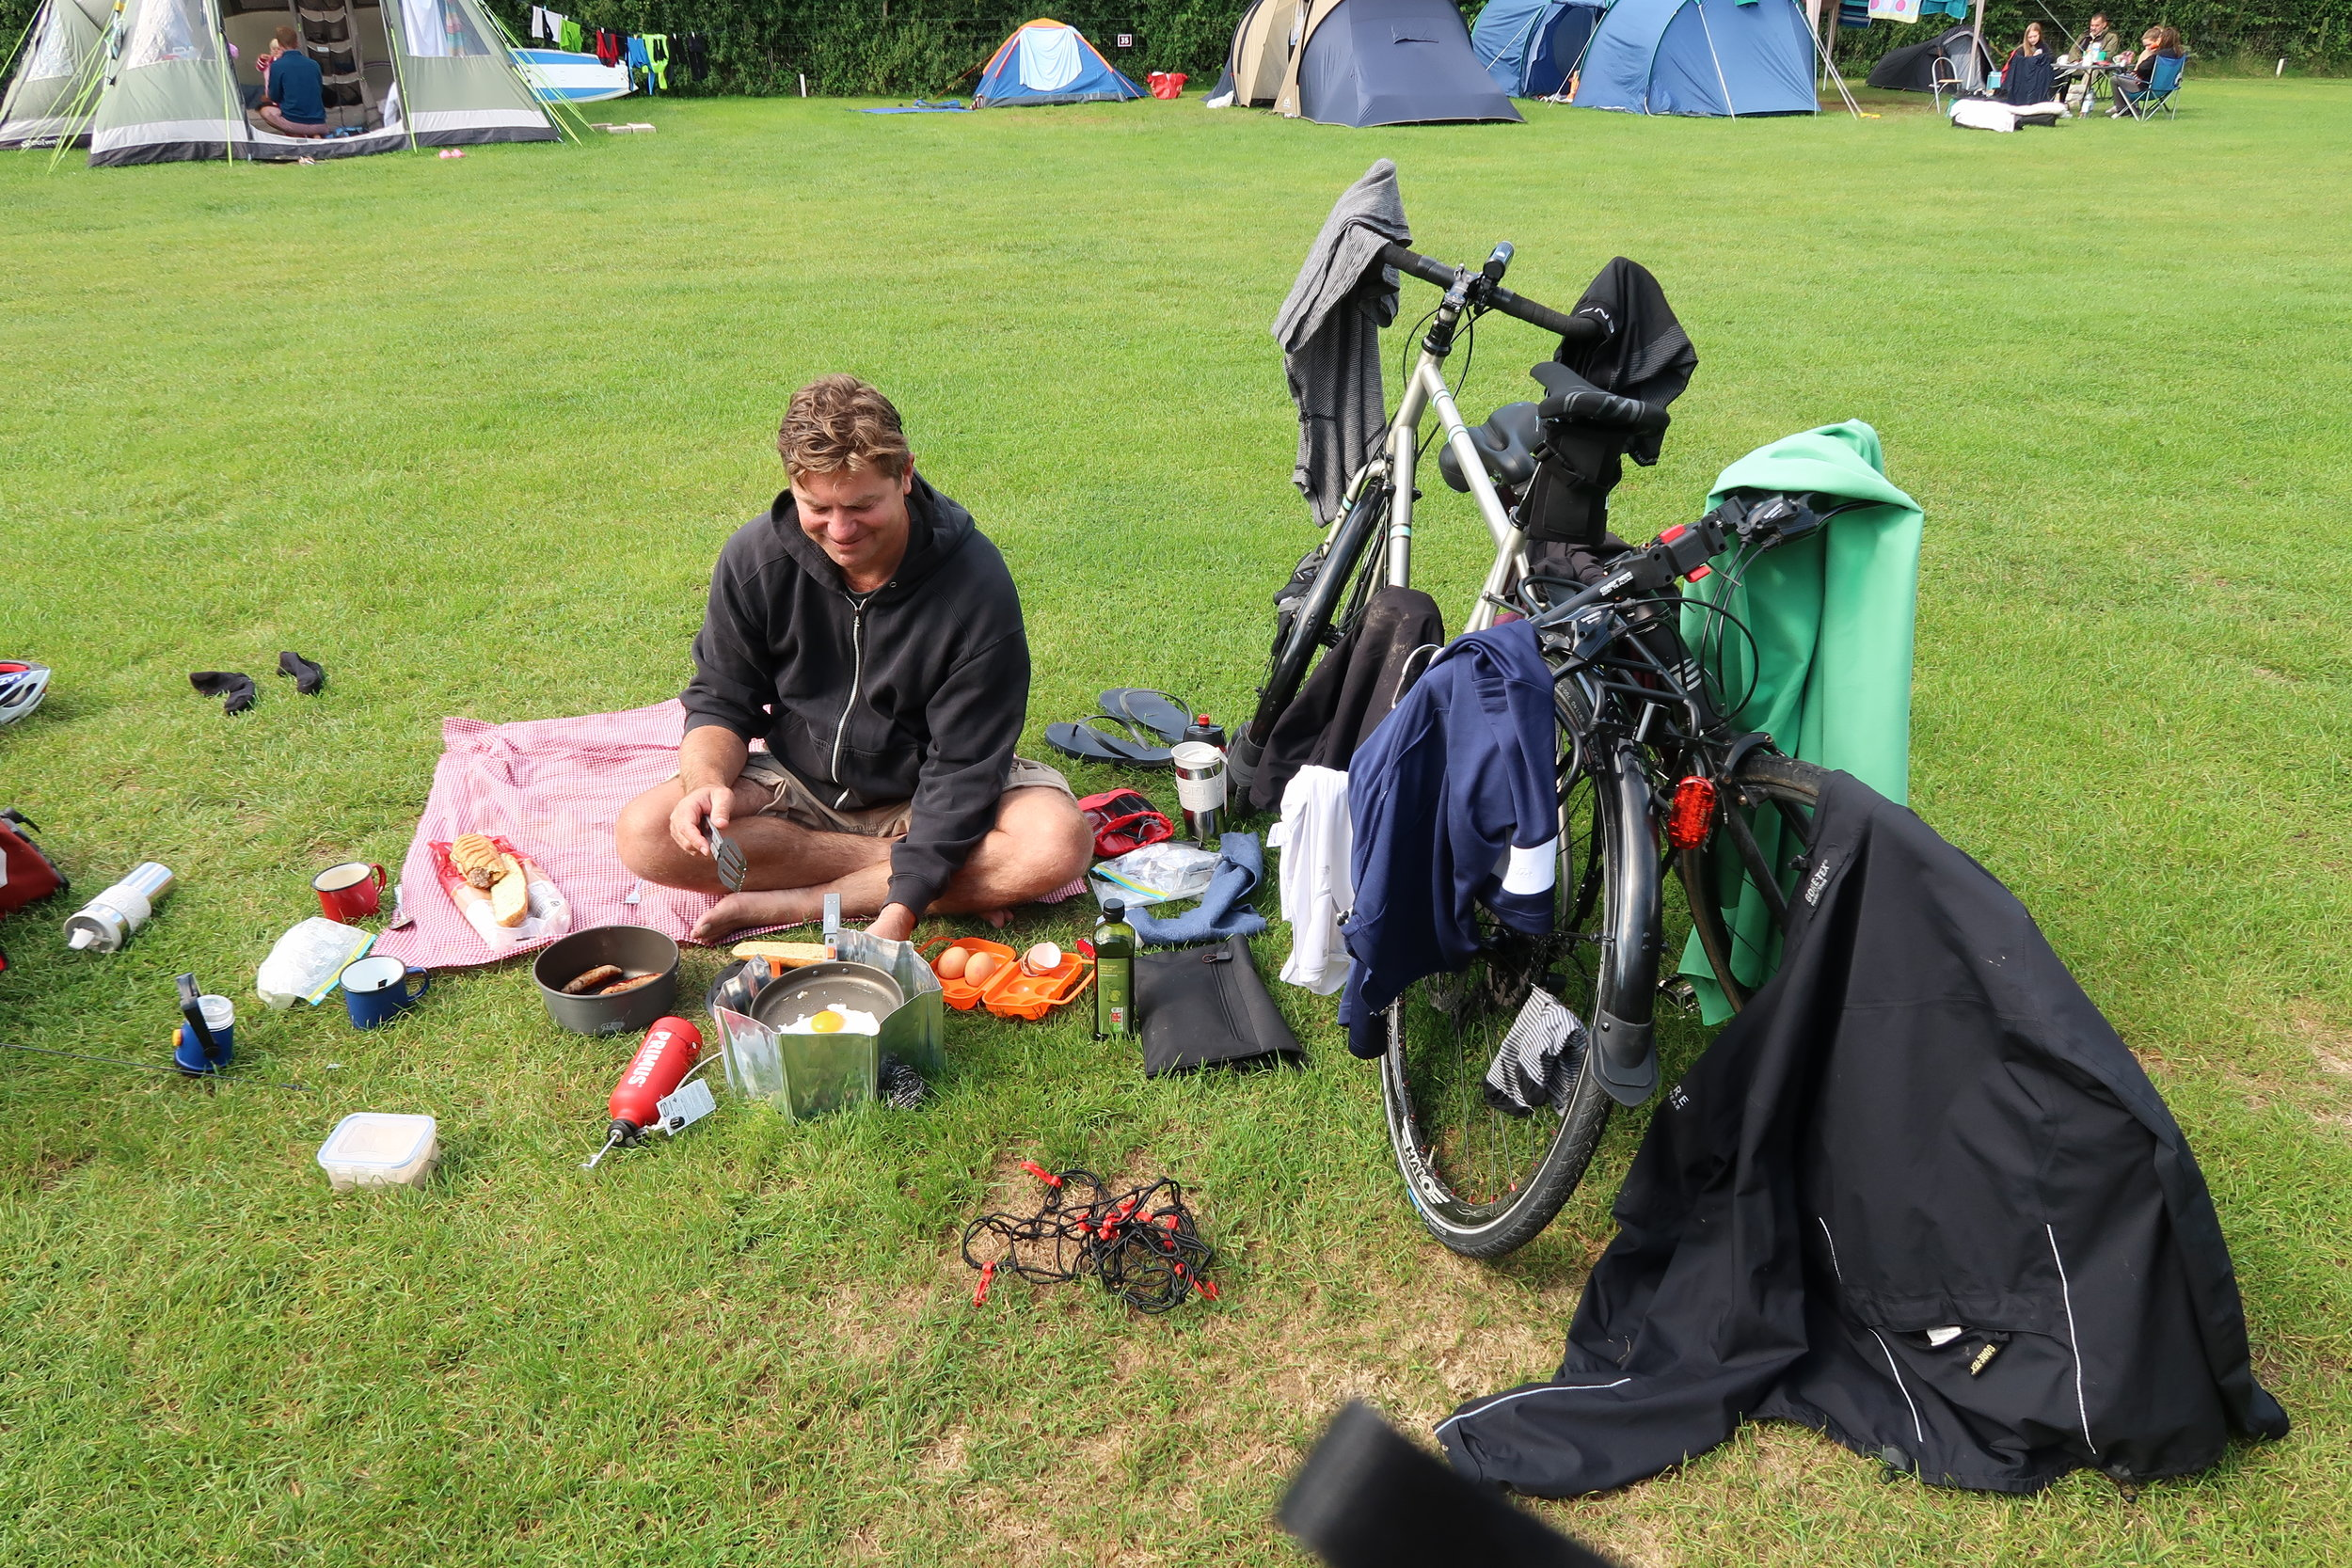 Messy campers, drying out kit over breakfast after a month's rainfall